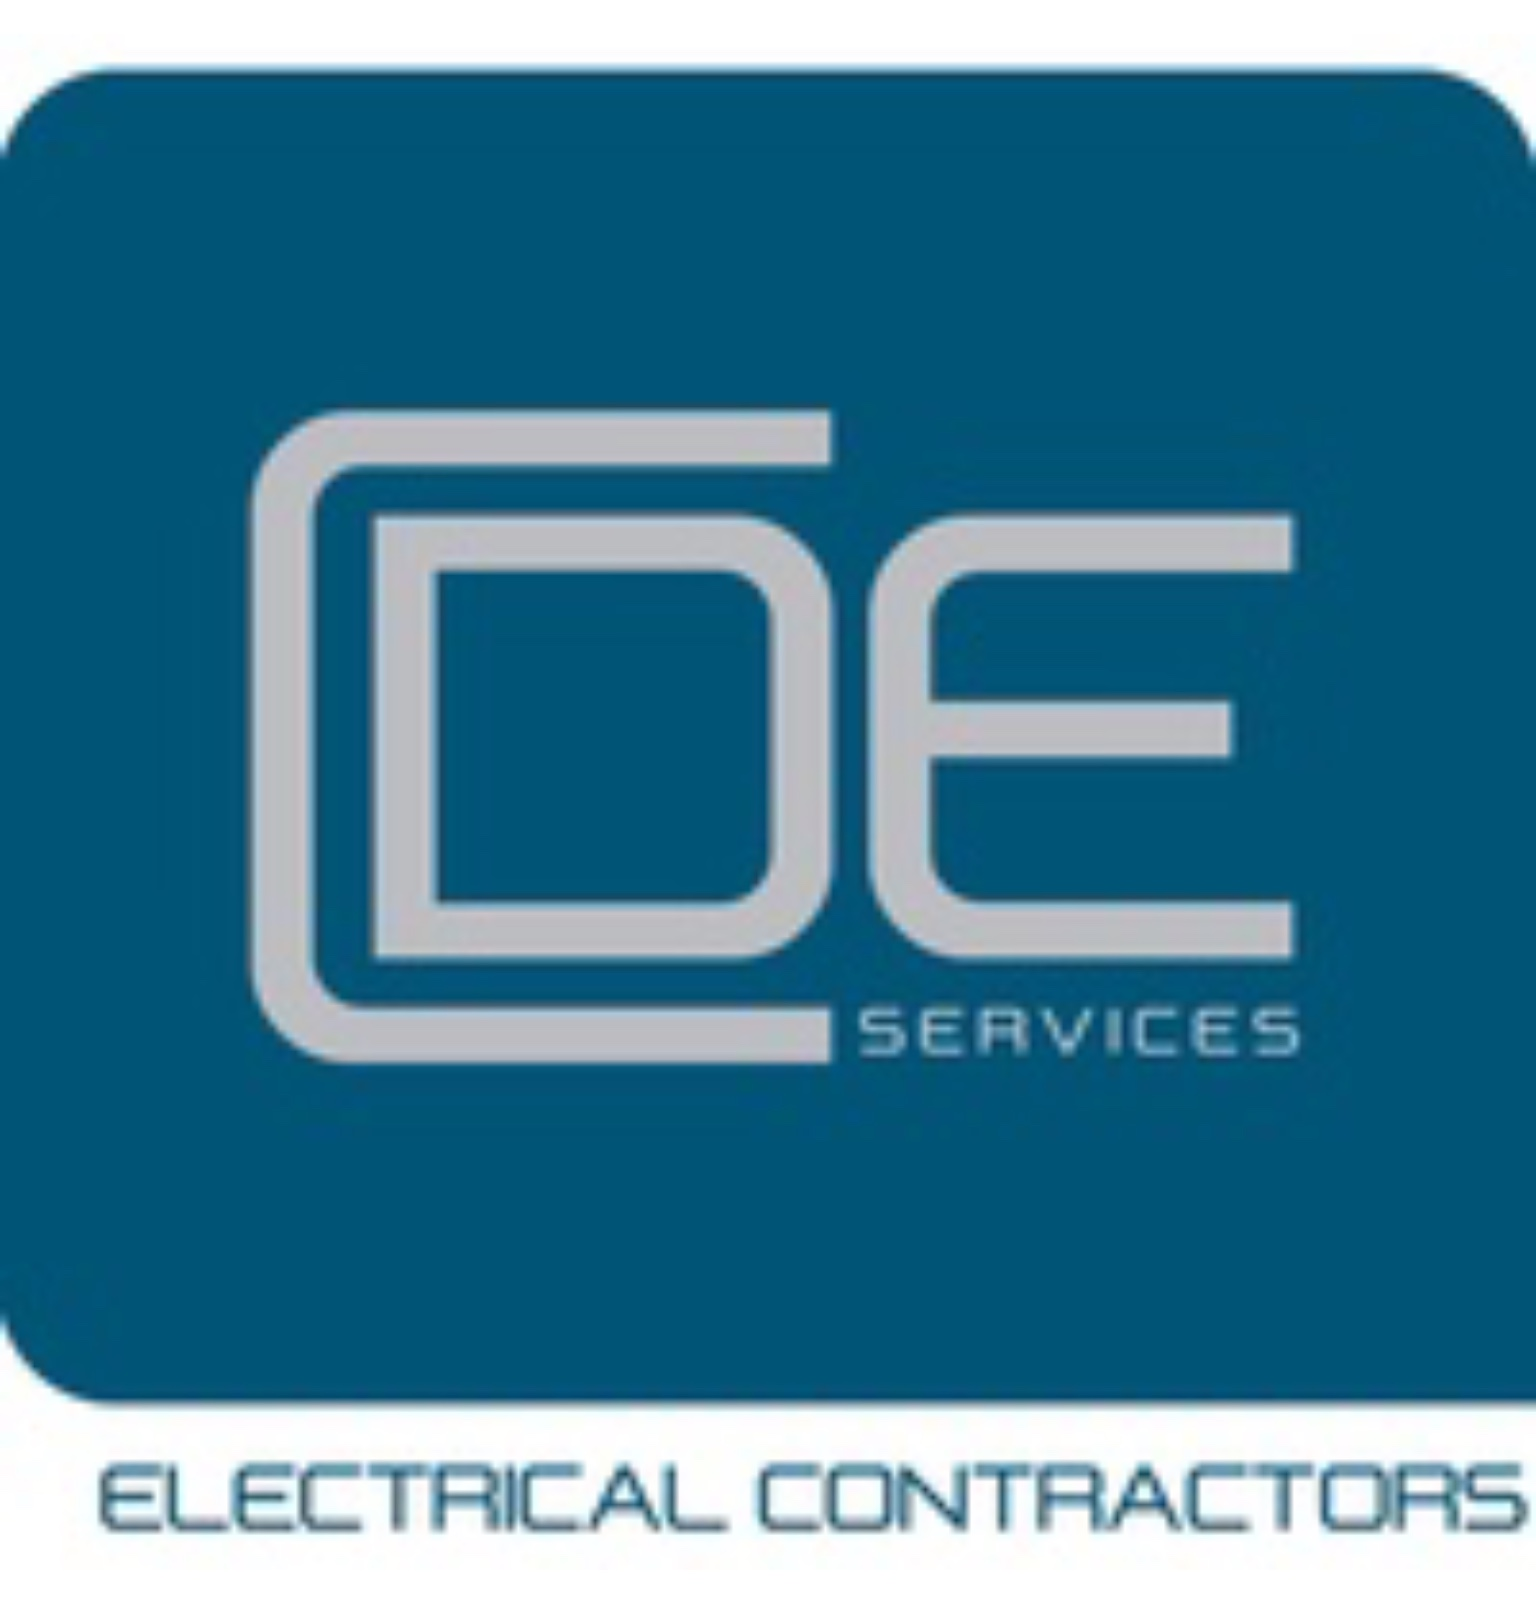 CD Engineering Services Ltd